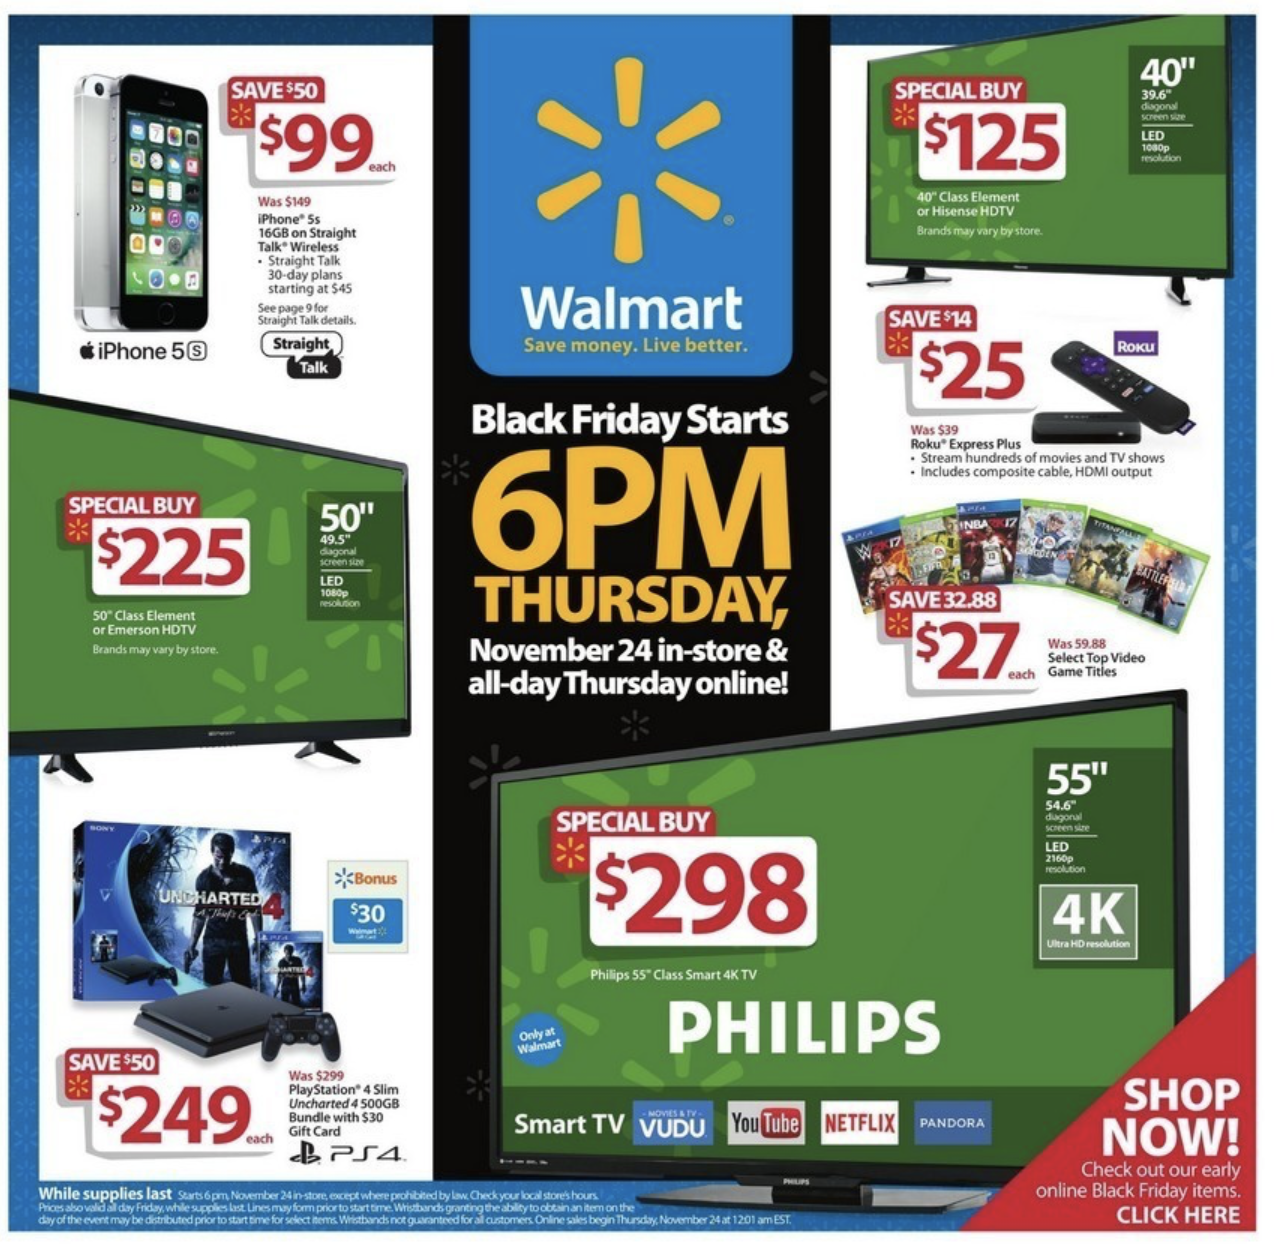 Black Friday 2017 Ads Some Walmart Target Amazon Deals